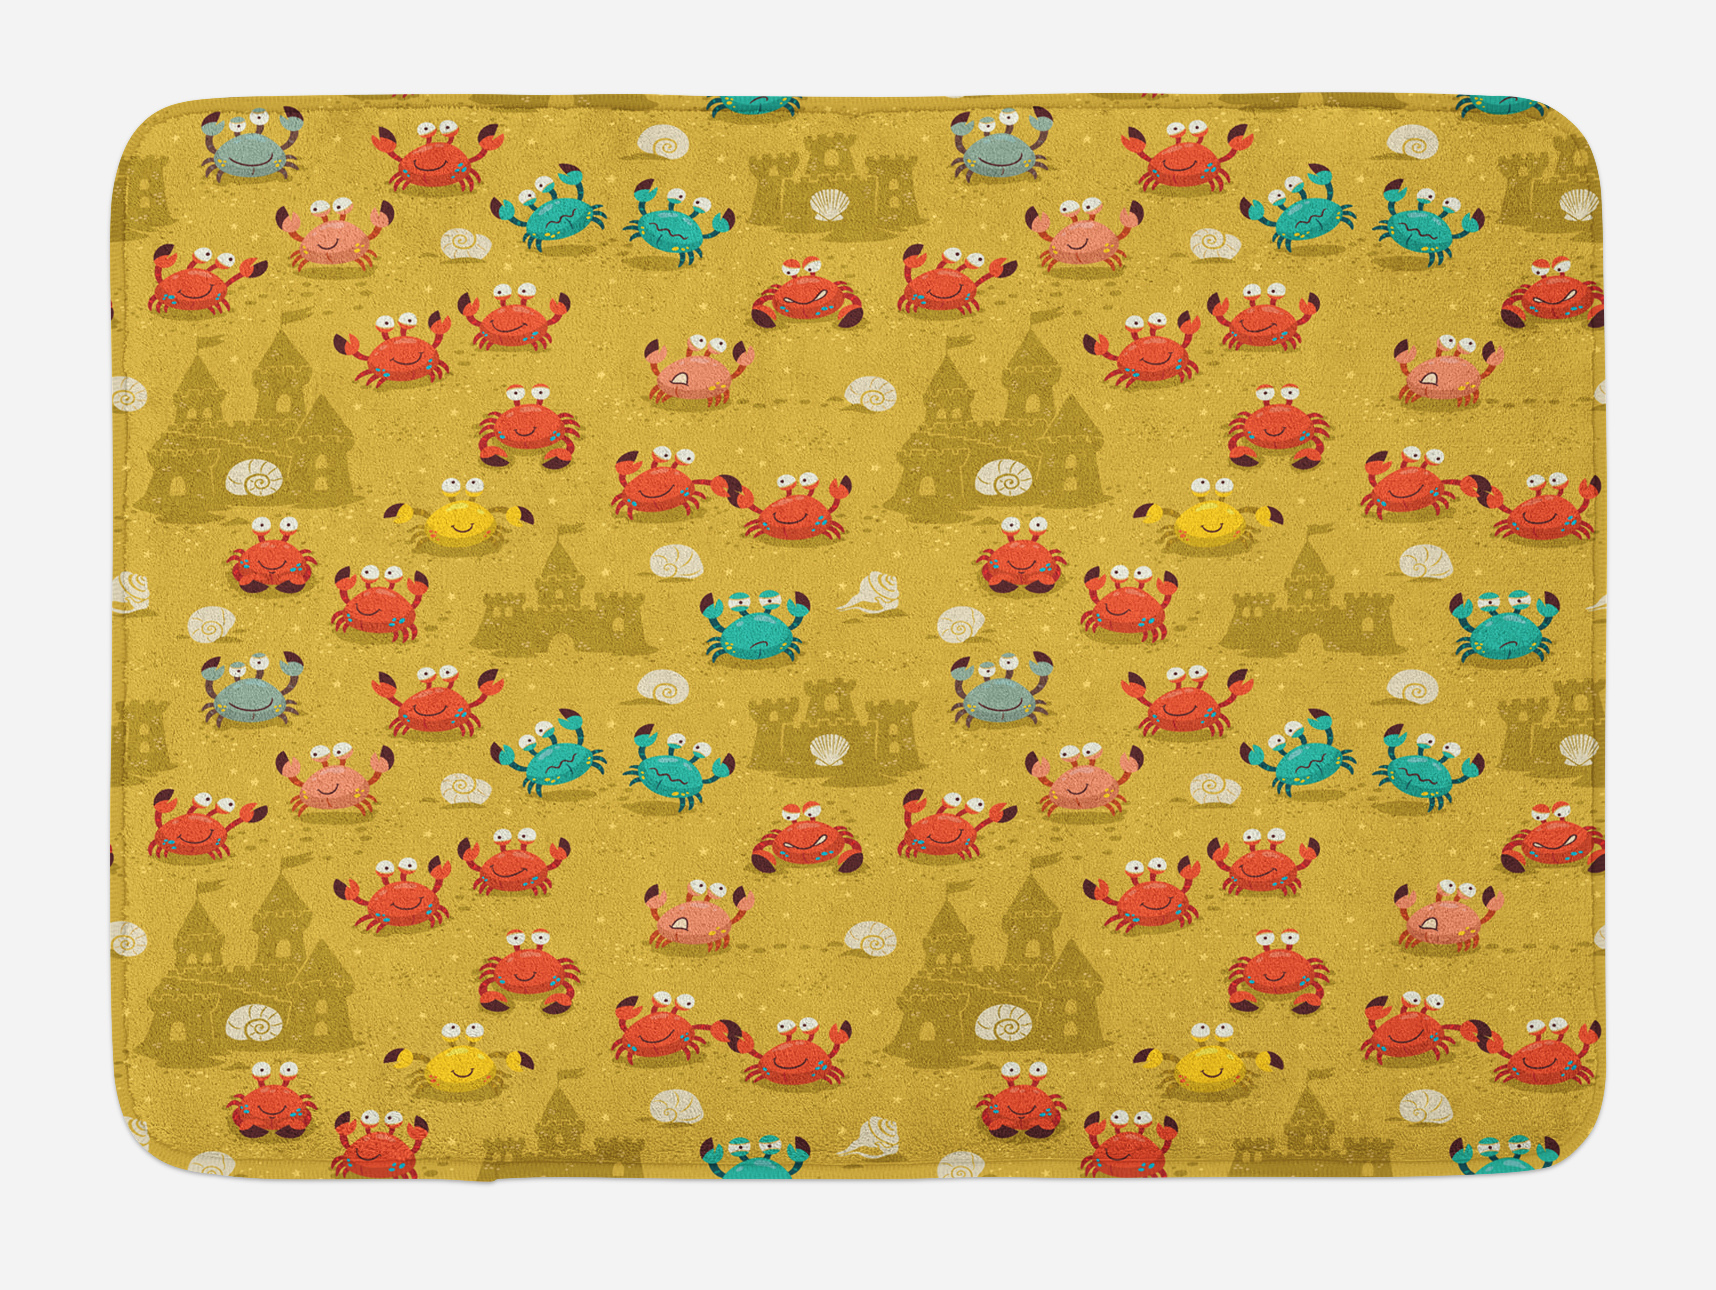 Crabs Bath Mat, Children Themed Cartoon Style Crabs and Shells and a Sand Castle on Beach... by 3decor llc